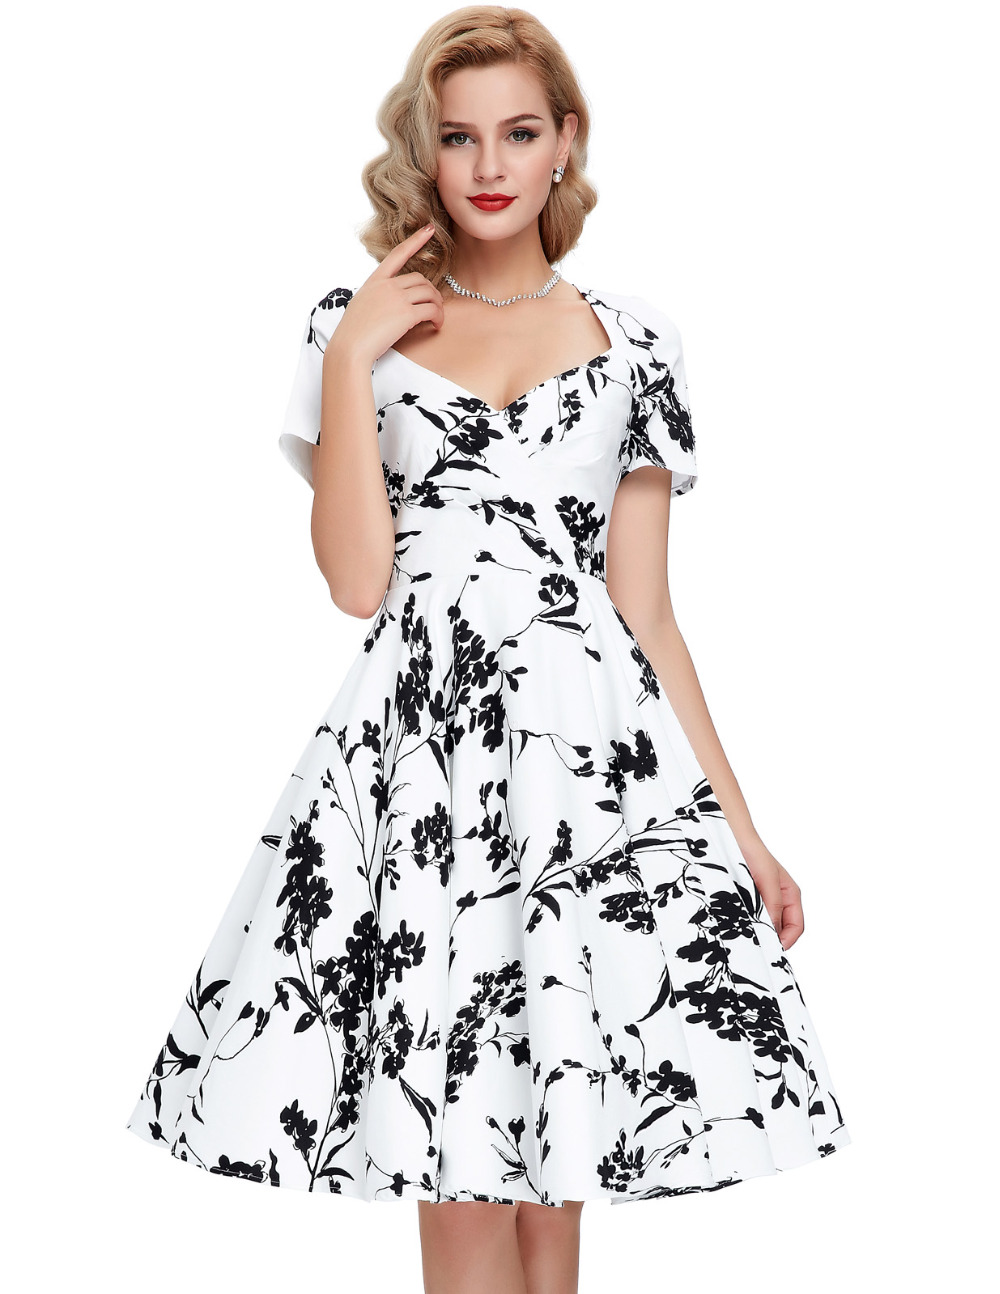 New 60s swing pinup dresses 2016 Summer Women Casual Retro ...